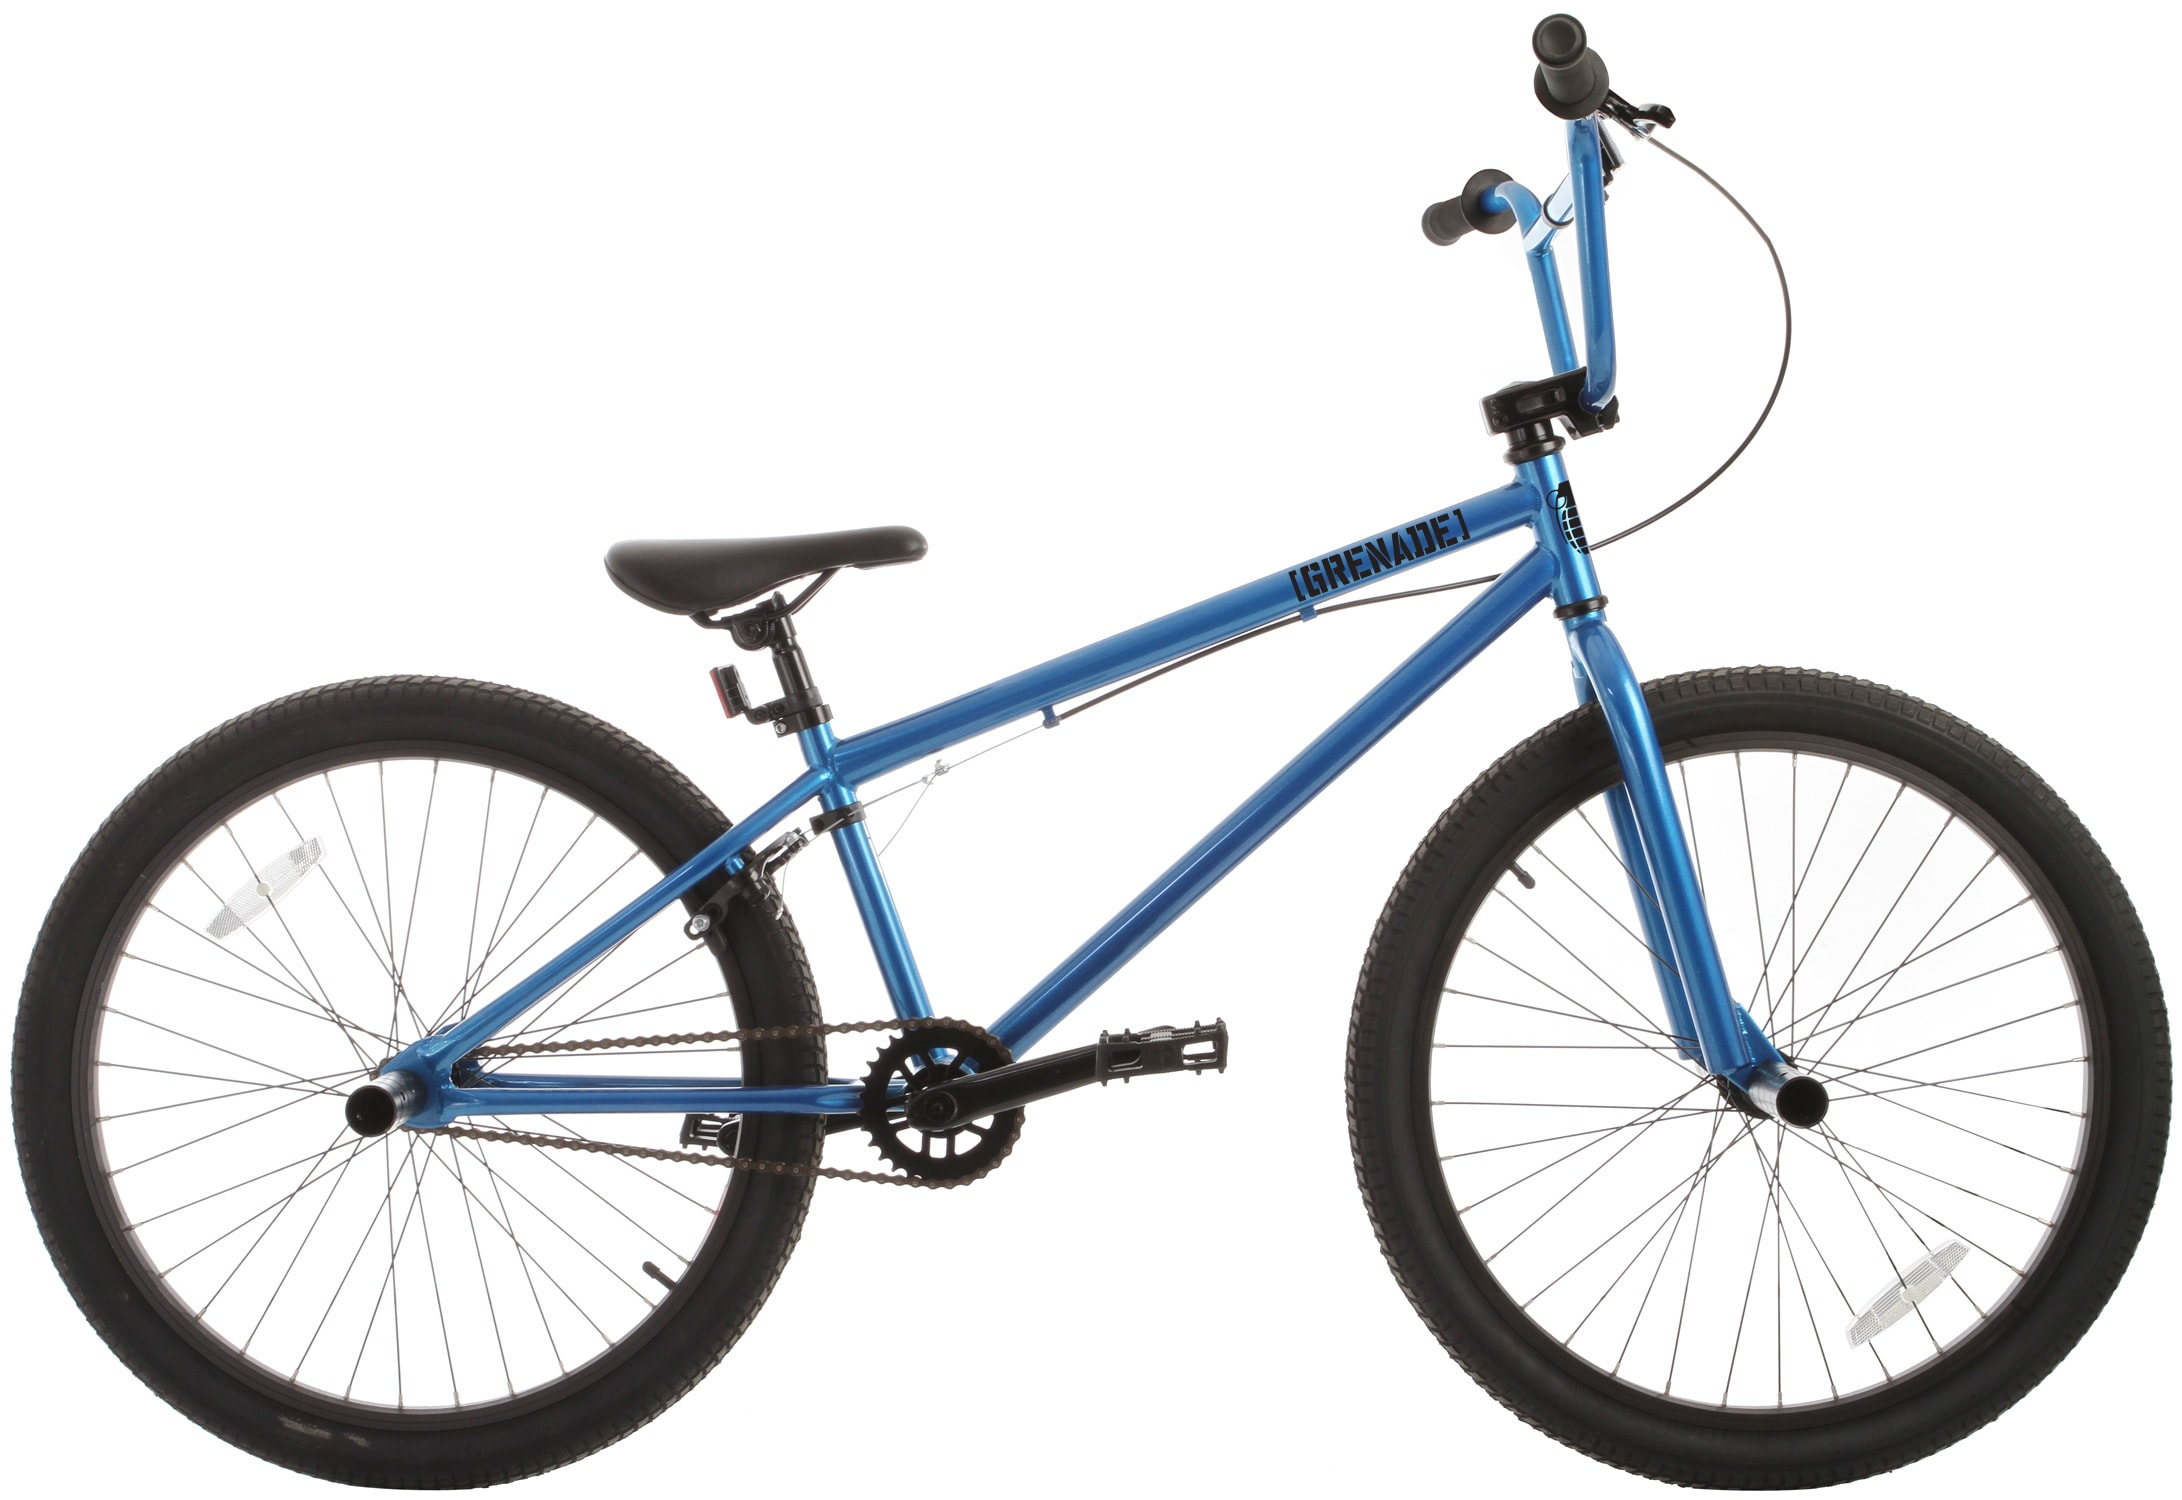 Bikes For Sale In Merced quot BMX Bikes